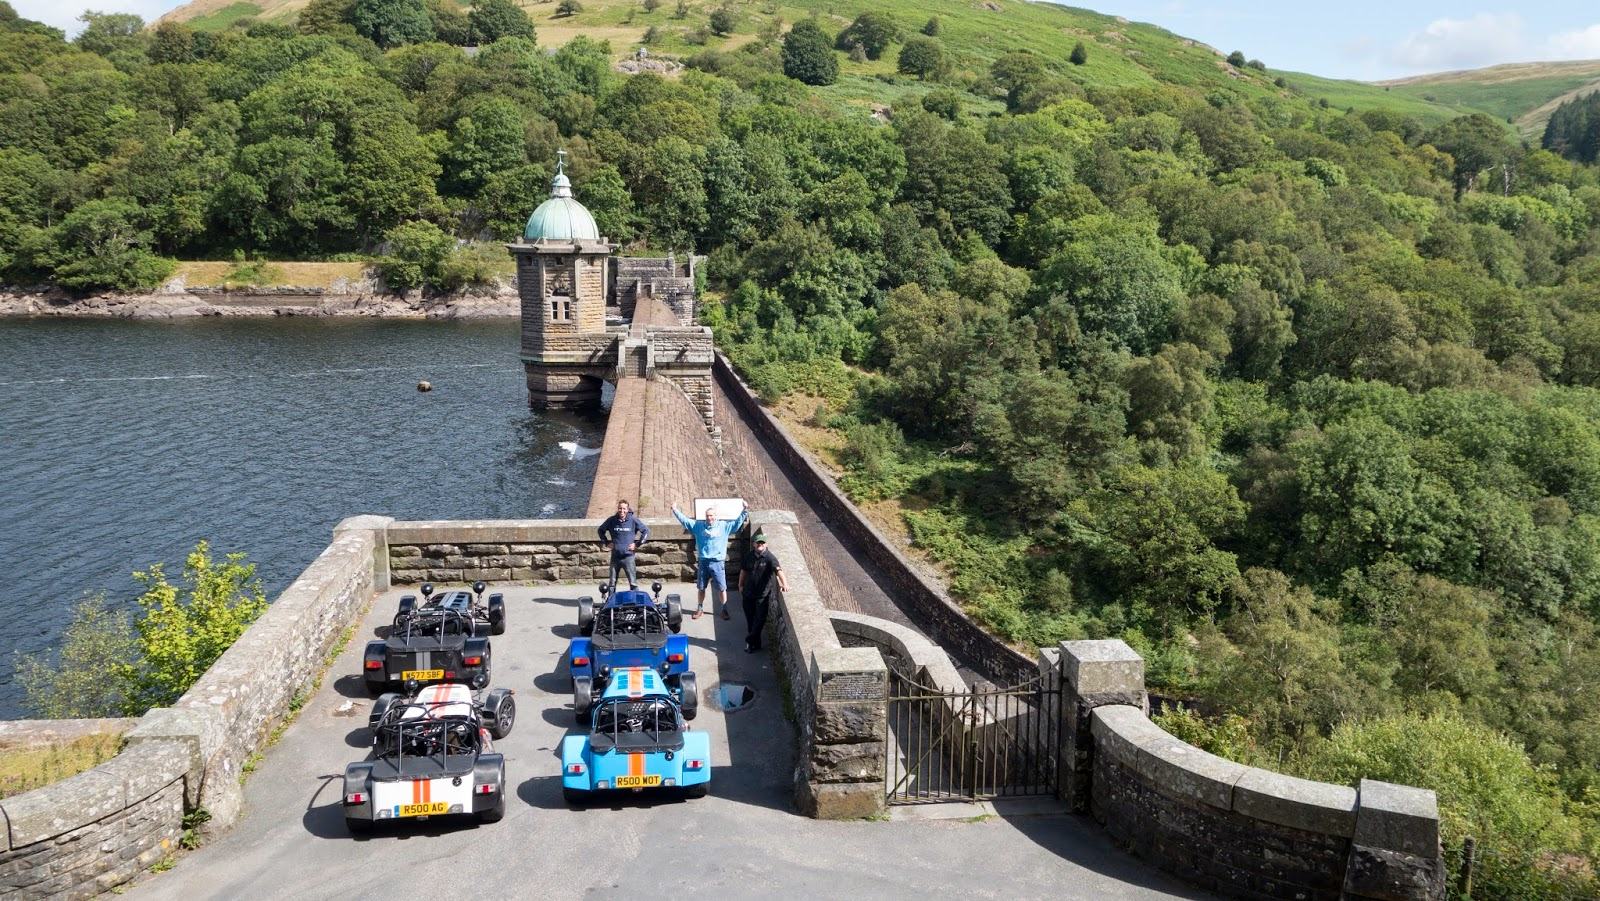 2x Caterham R500's, 1x Caterham R300 and 1x Caterham K series 1600 Supersport at the Pen Y Garreg Dam